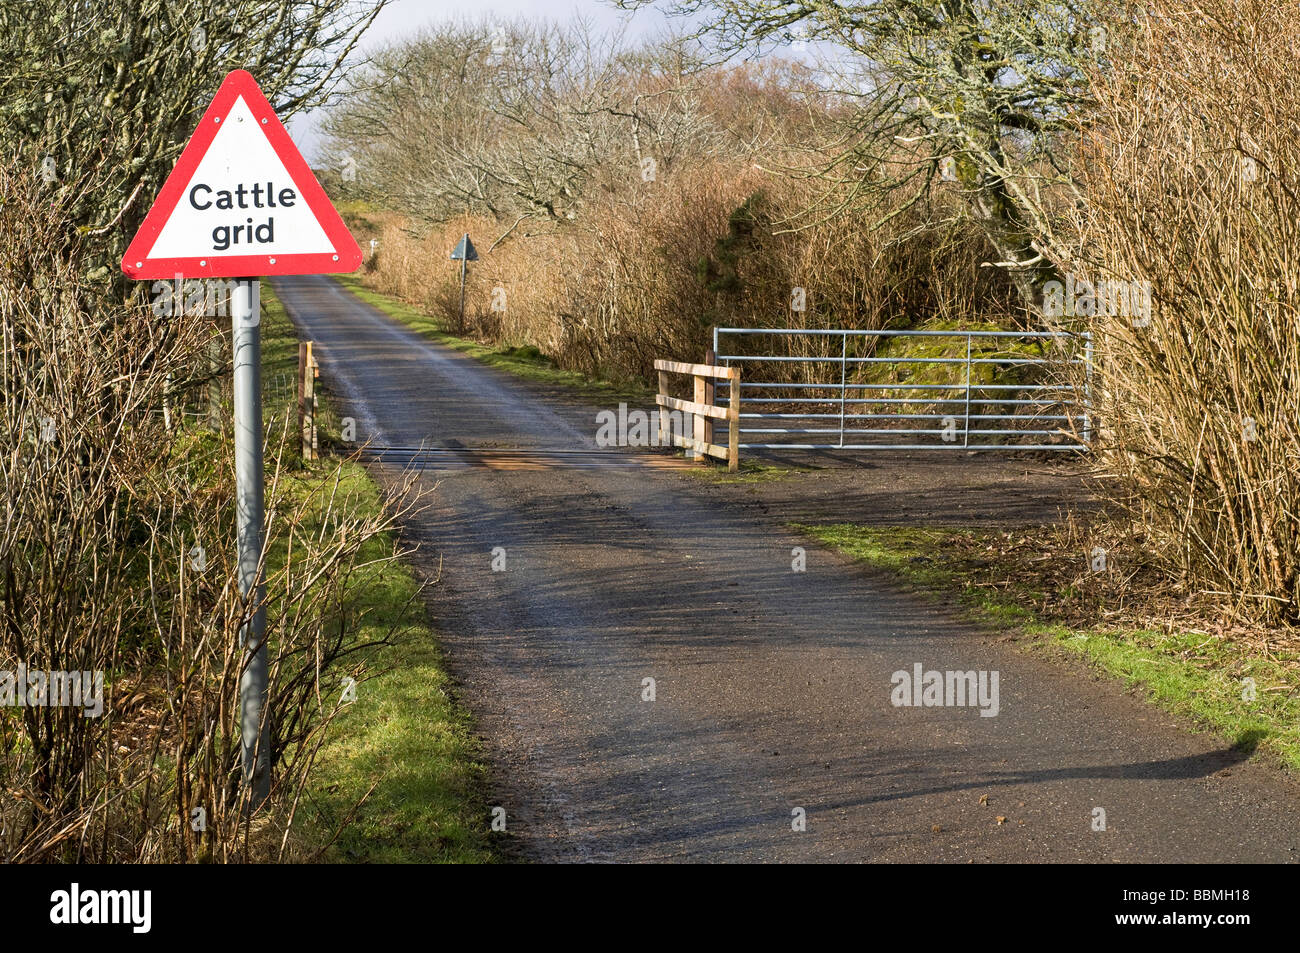 dh  CATTLE UK Scotland Country road Caithness cattle grid gate and signpost - Stock Image